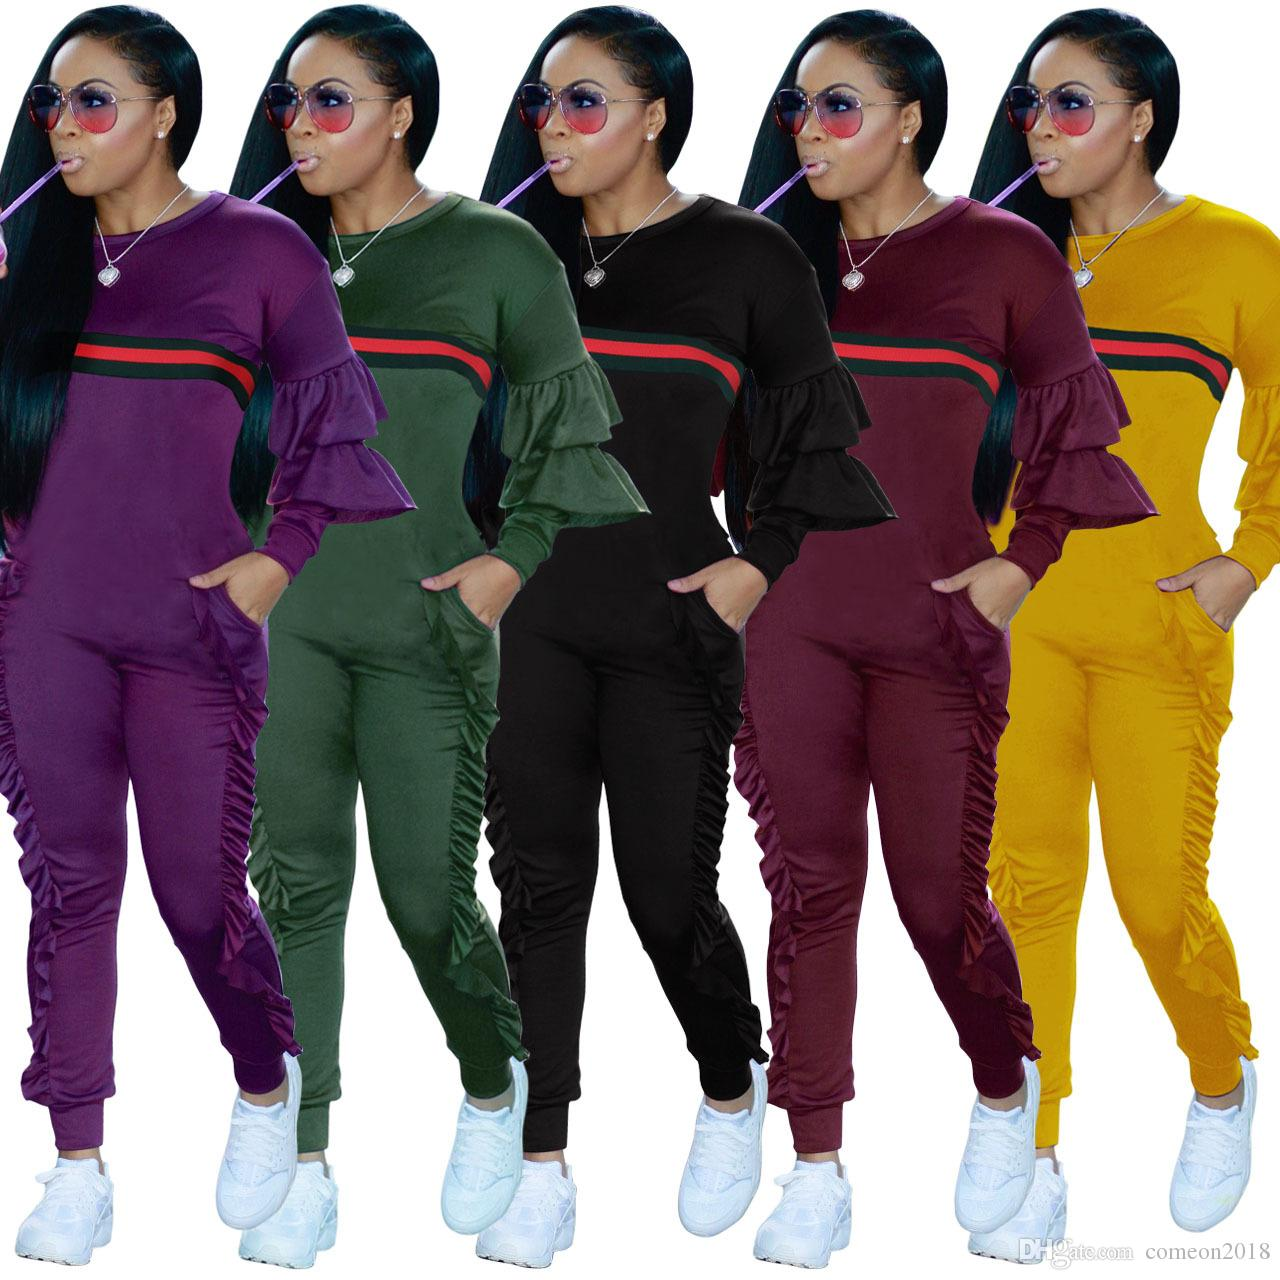 540276eb6df4d Womens Jumpsuits Ruffles Tracksuit Fashion Women Patchwork Striped Jumpsuit  Long Sleeve Hoody Stringy Selvedge Jumpsuit Casual Overalls Women Jumpsuits  ...